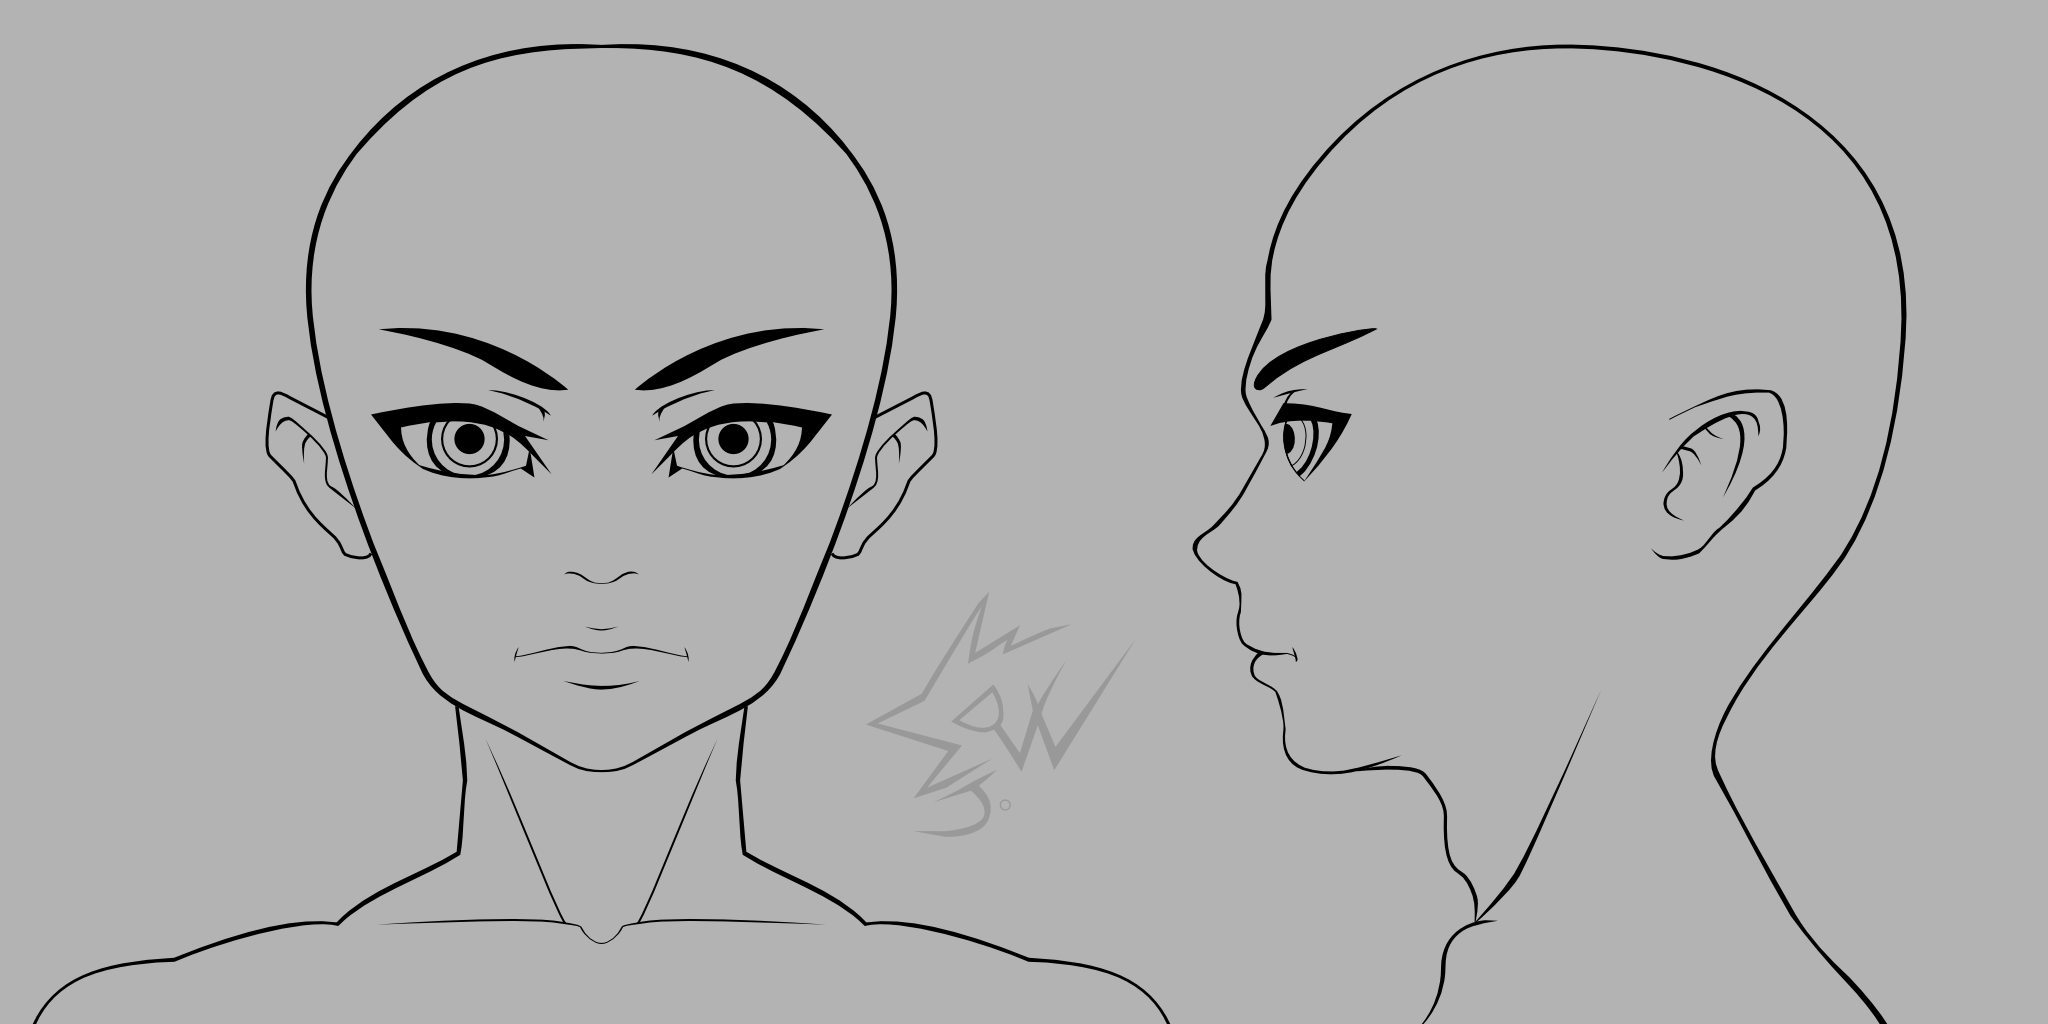 Anime Boy Head Model Sheet 01 By Johnnydwicked